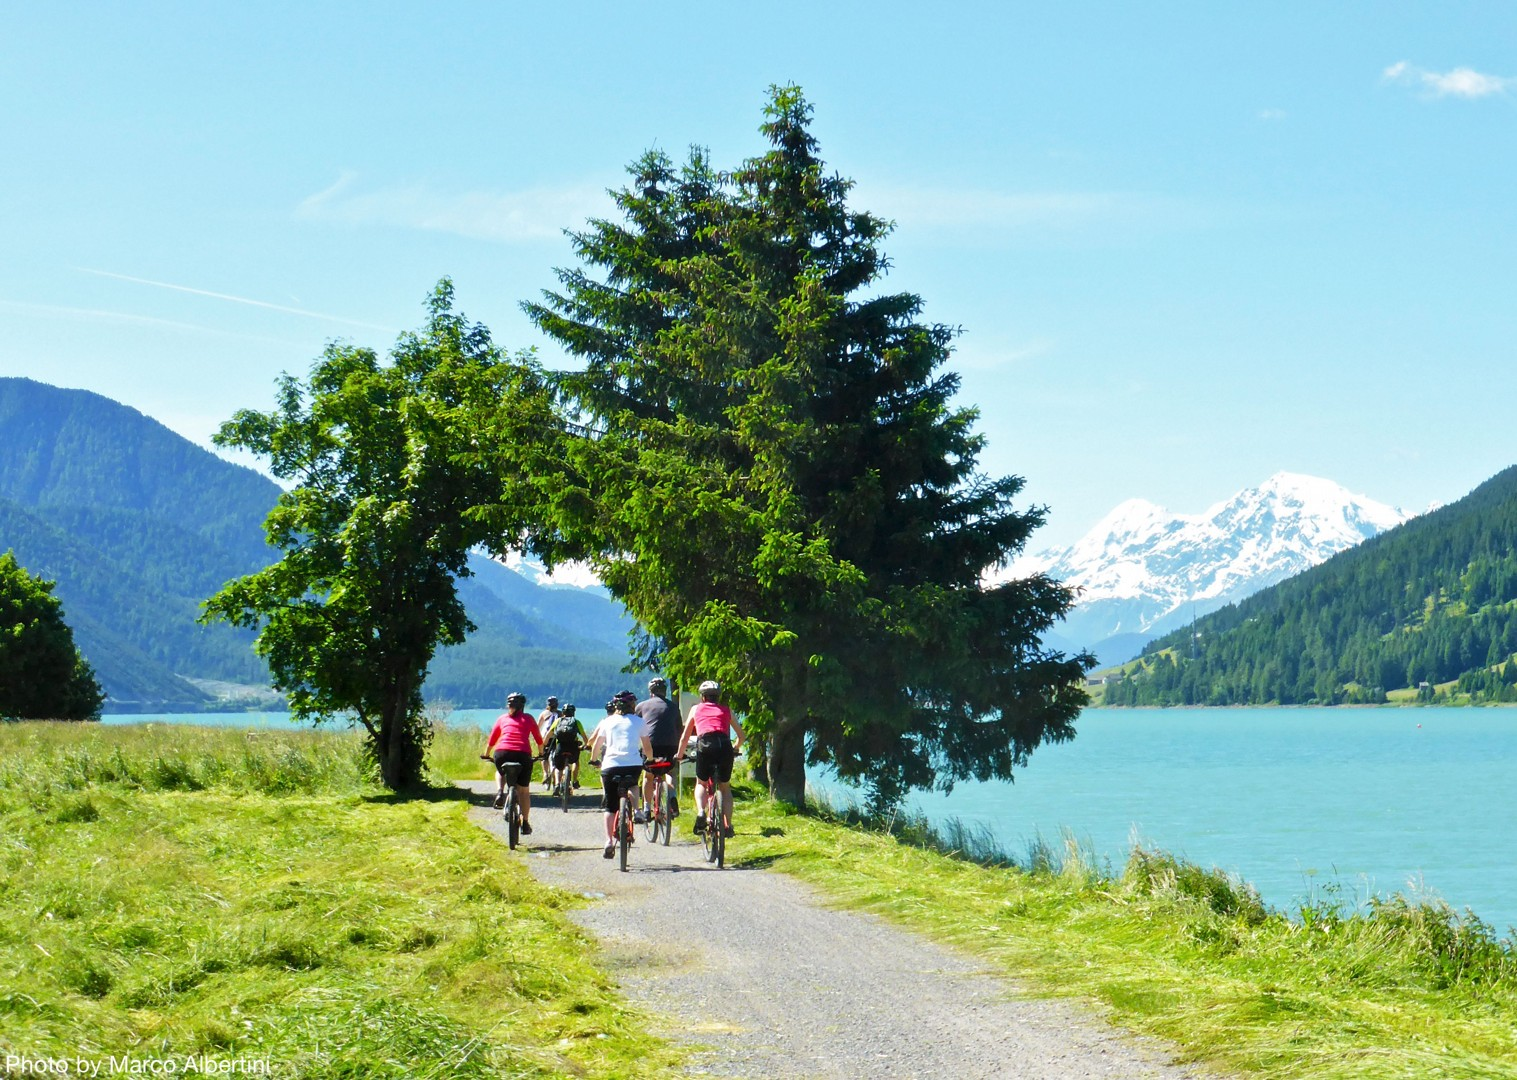 italian-self-guided-leisure-cycling-holiday.jpg - Italy - La Via Claudia - Self-Guided Leisure Cycling Holiday - Leisure Cycling